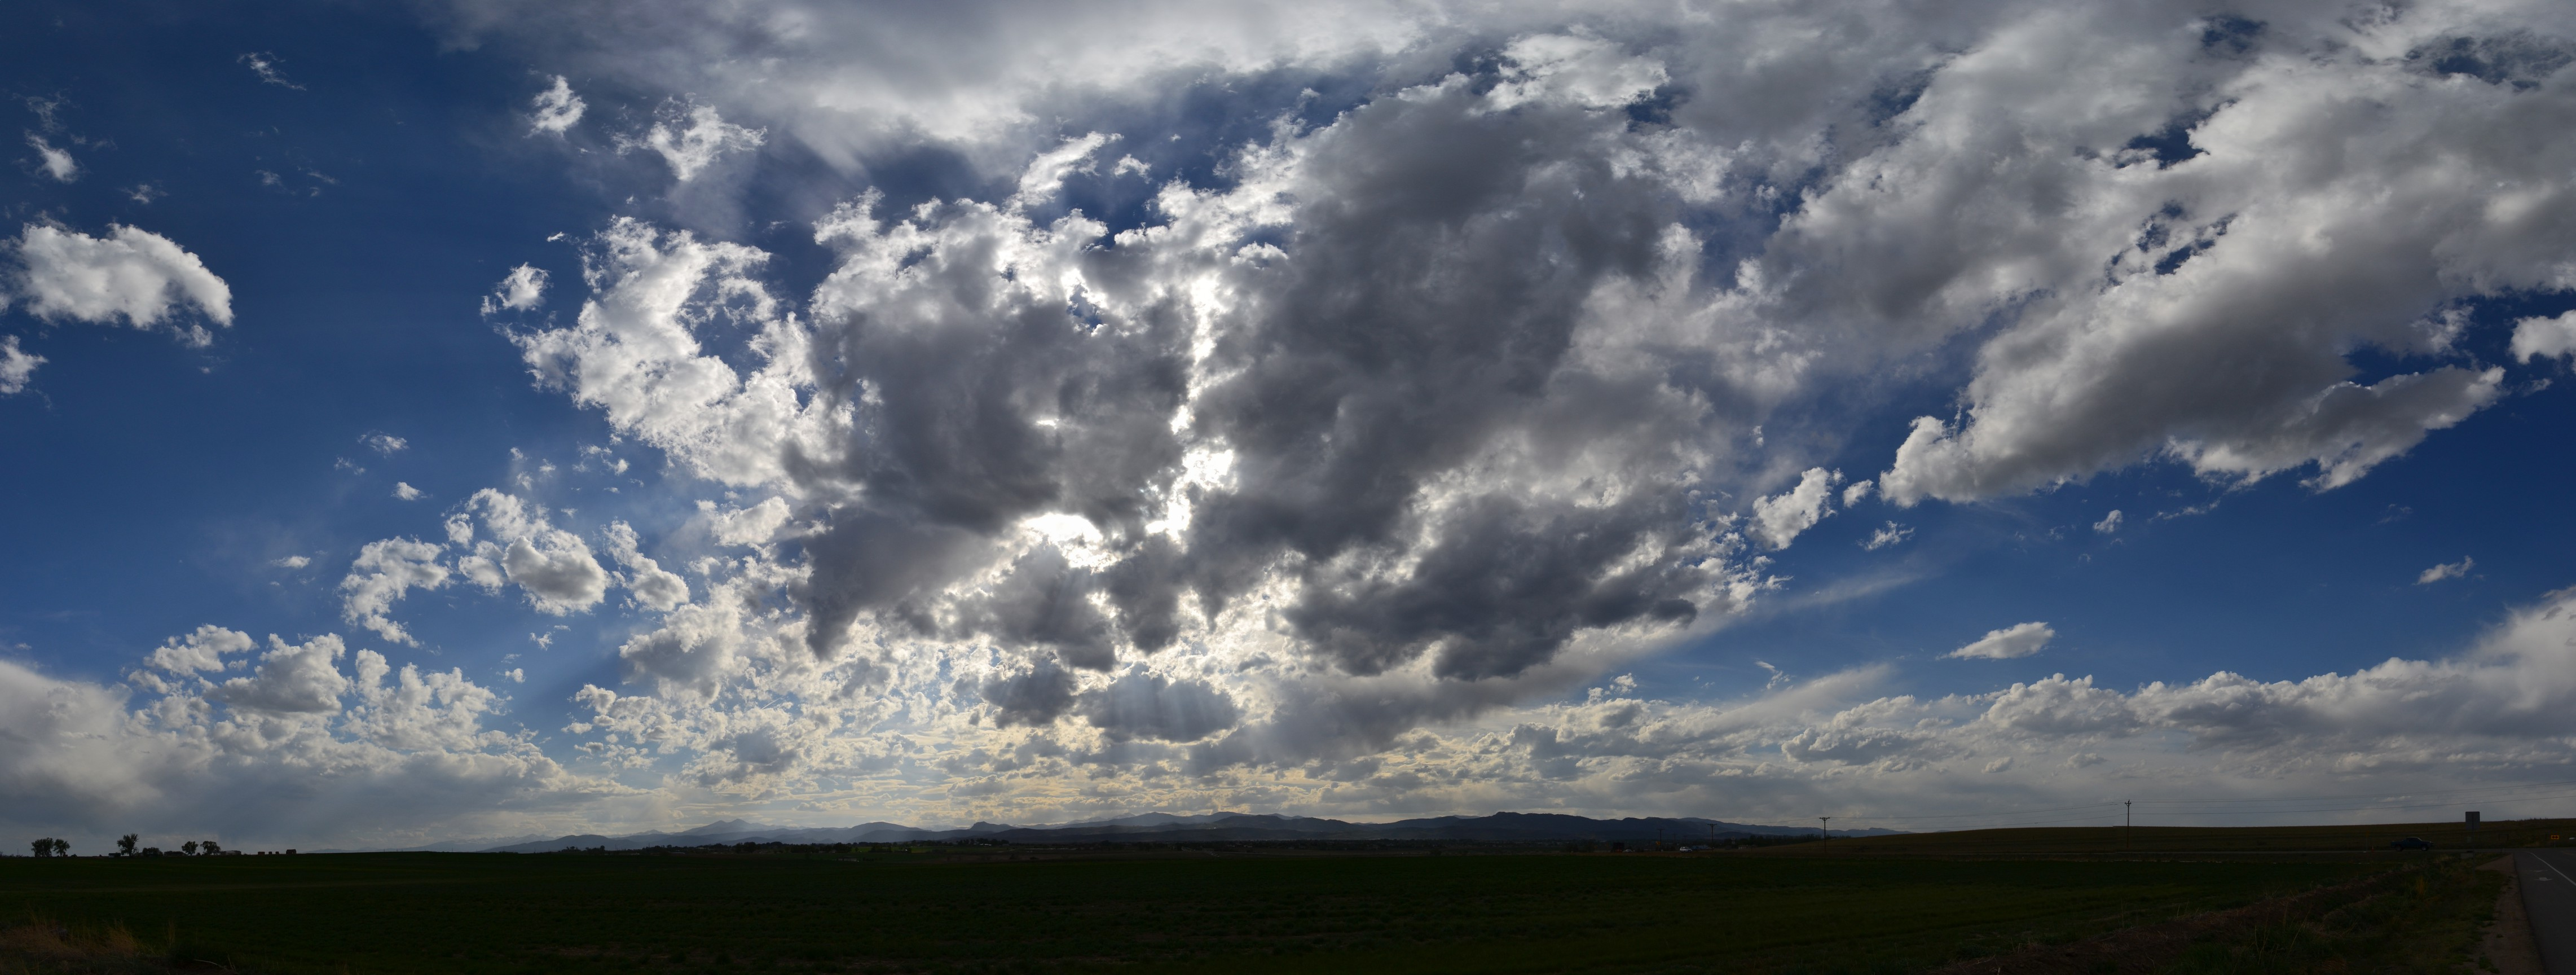 Backlit God's Rays Stratus Clouds Panoramic, 2012-05-03 - Stratus ... Kevin